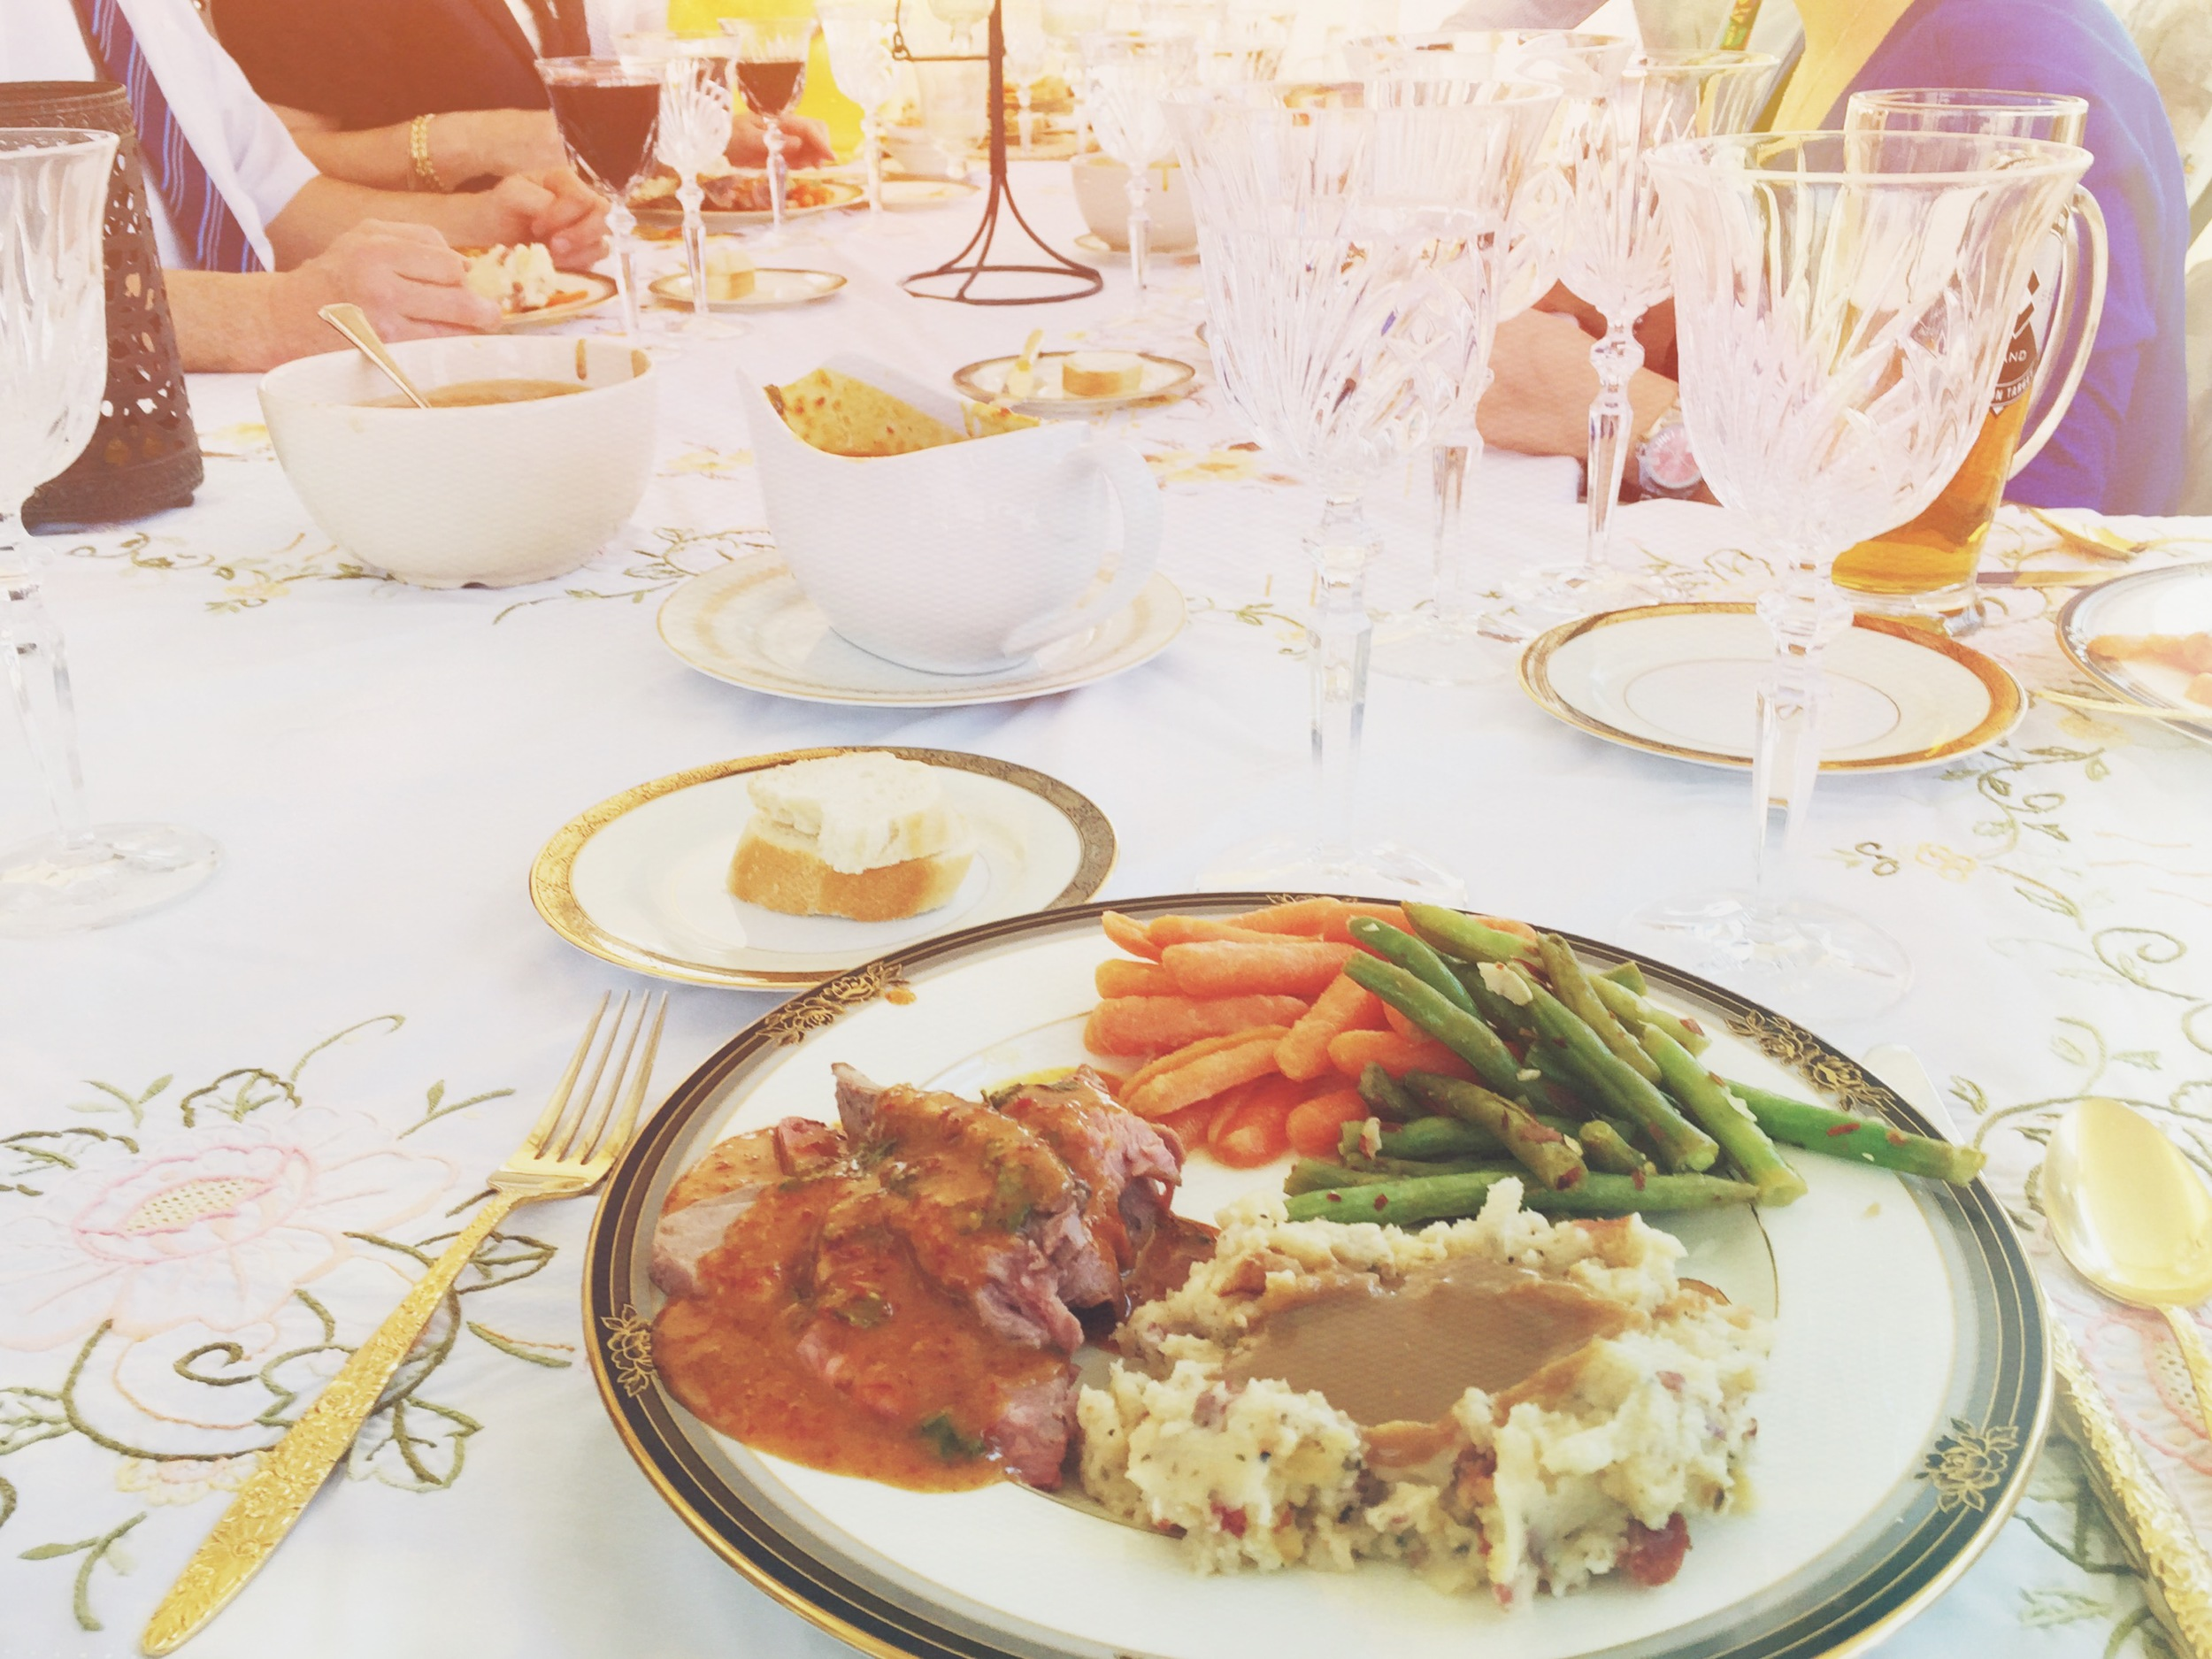 & of course the food is always amazing! Thank you for all of your blessings, God!